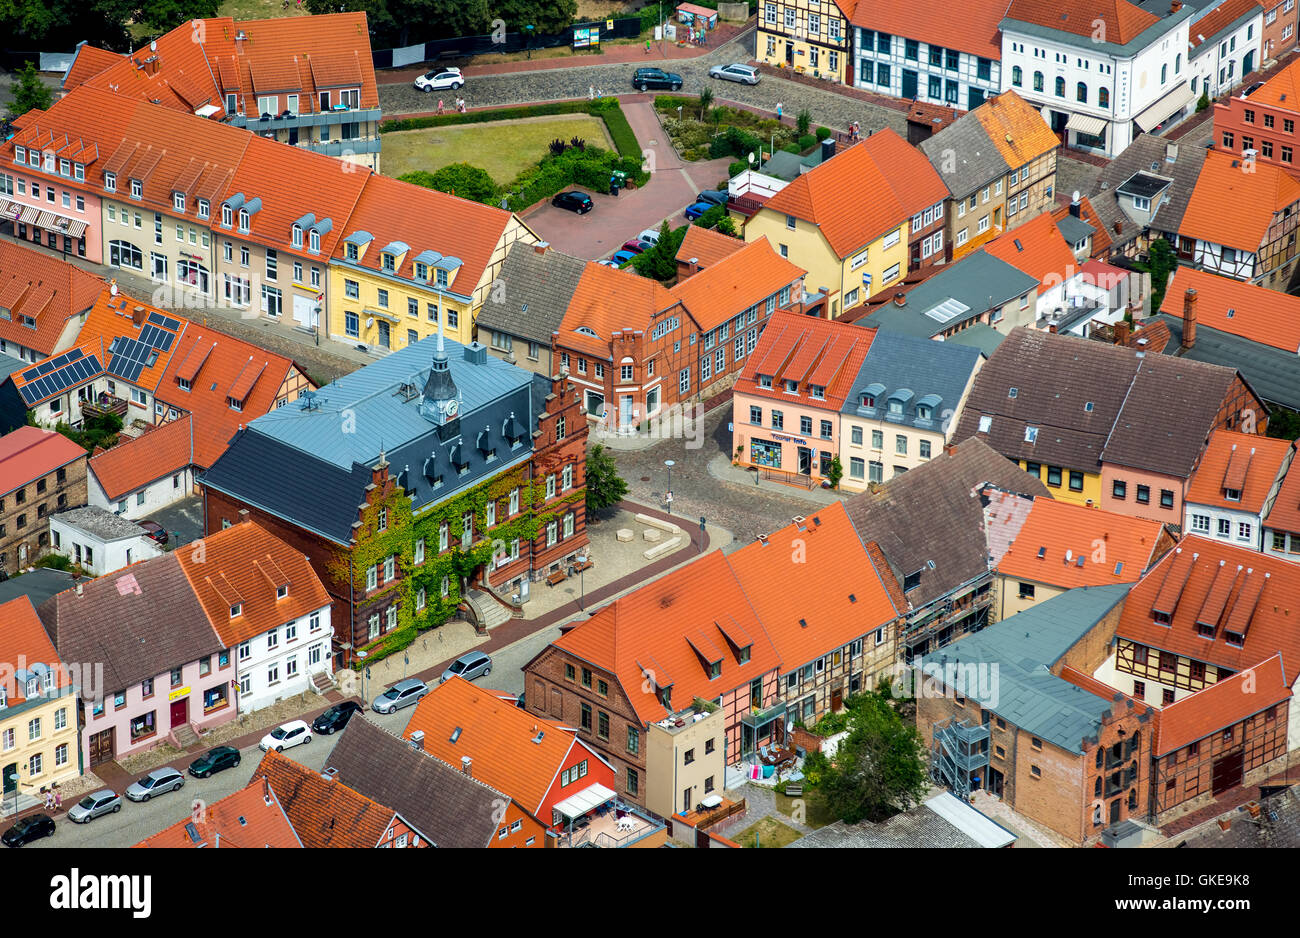 Aerial view, Official Plau, Town Hall, Plau, Mecklenburg Lake District, Mecklenburgian Switzerland, Mecklenburg - Stock Image